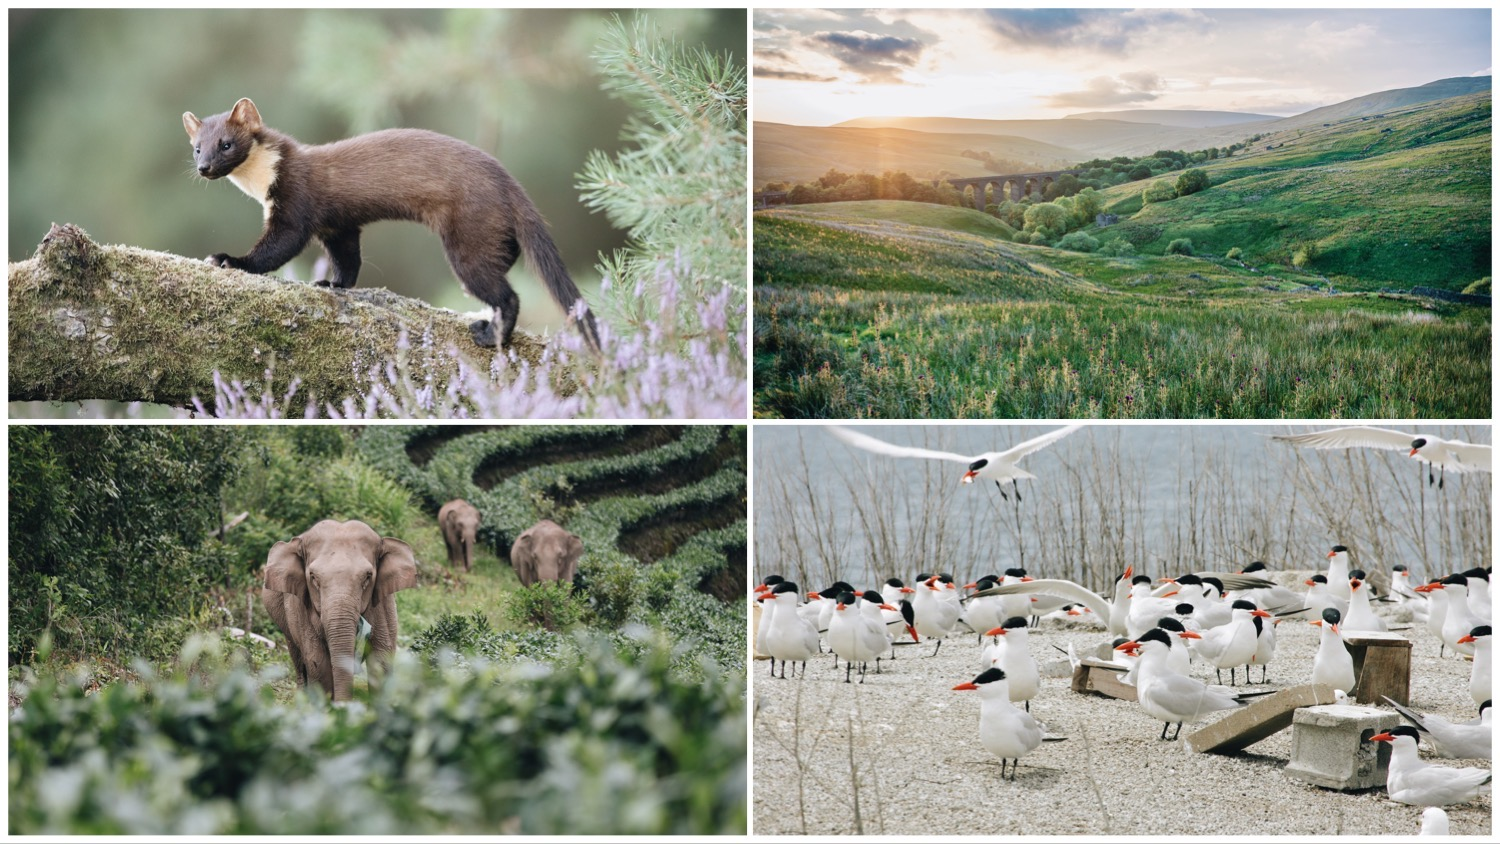 Photo grid featuring four of this week's stories. Clockwise from top left: A British pine marten, rolling English hills, China's roaming elephants, and Canadian Common Terns.